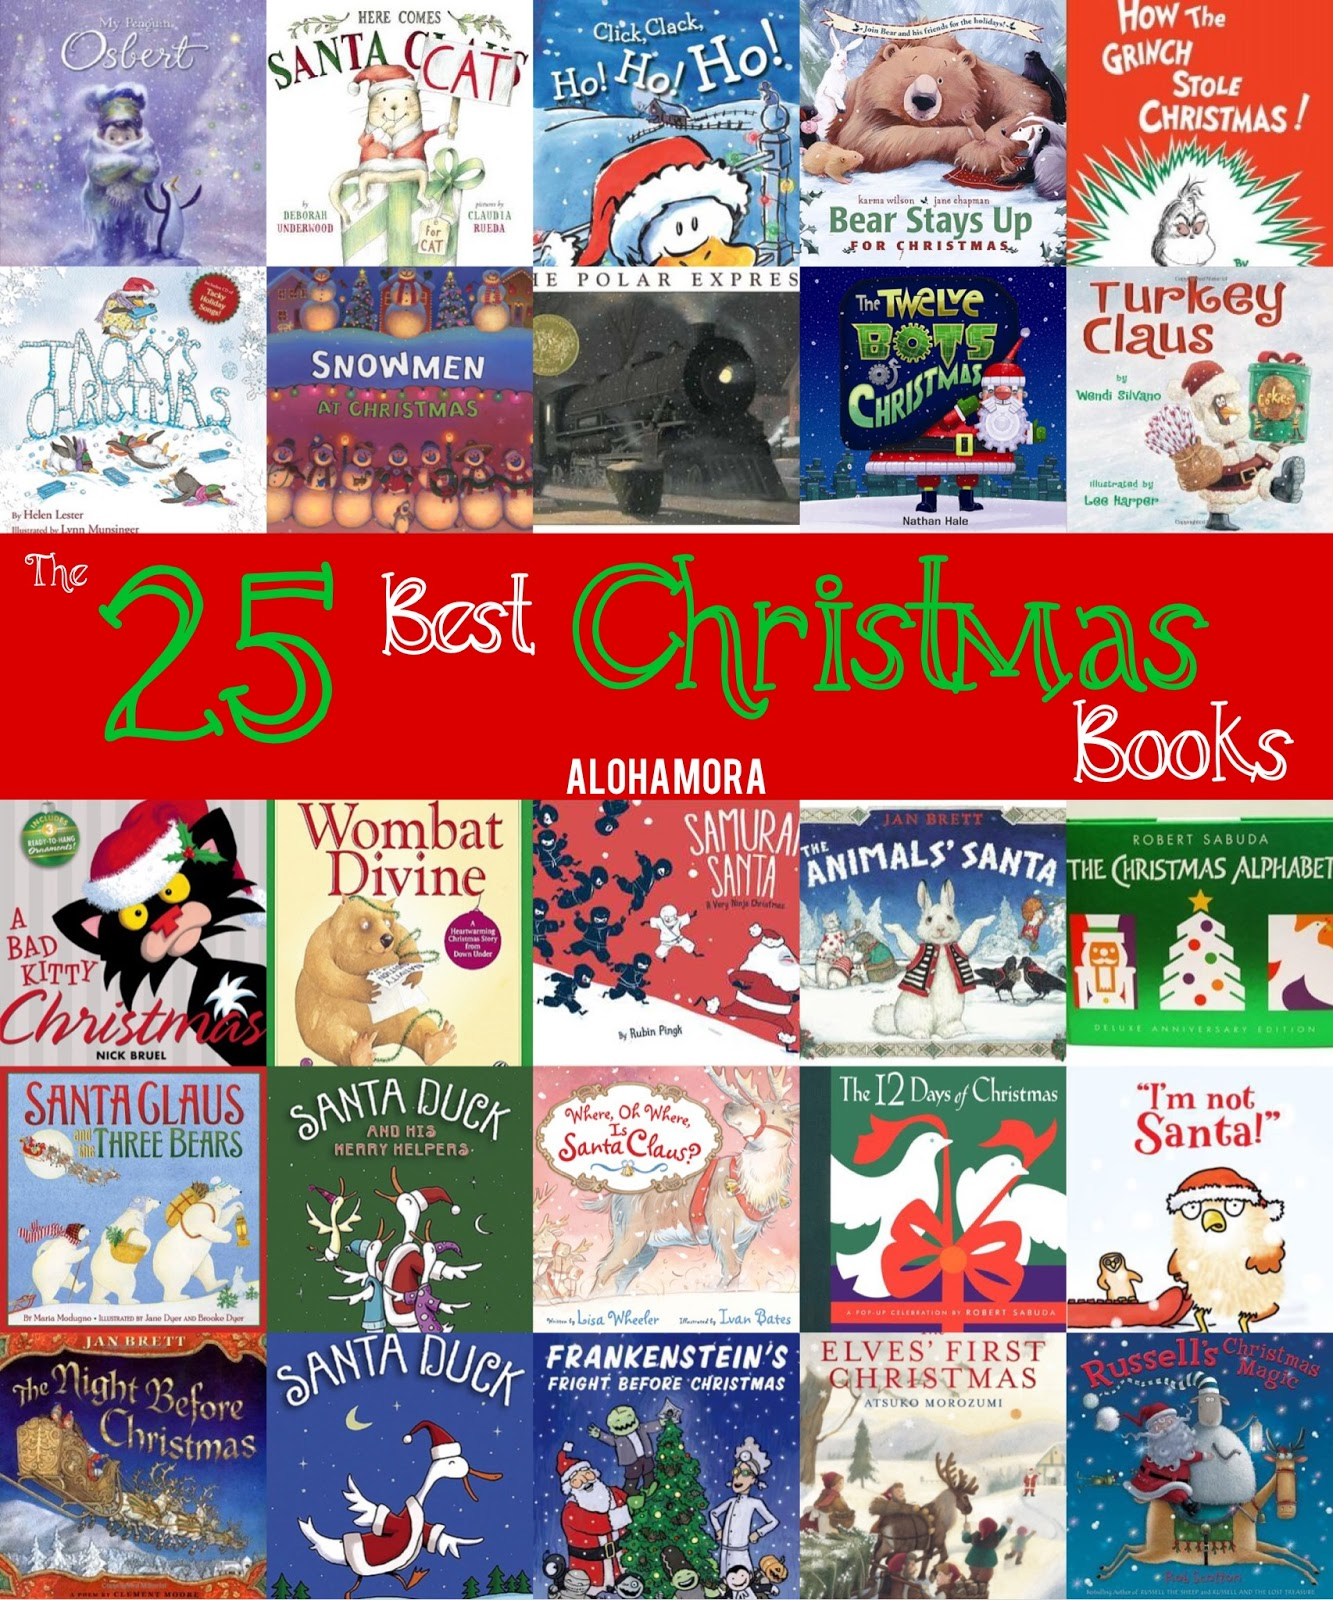 alohamora open a book the 25 best christmas picture books - Classic Christmas Books